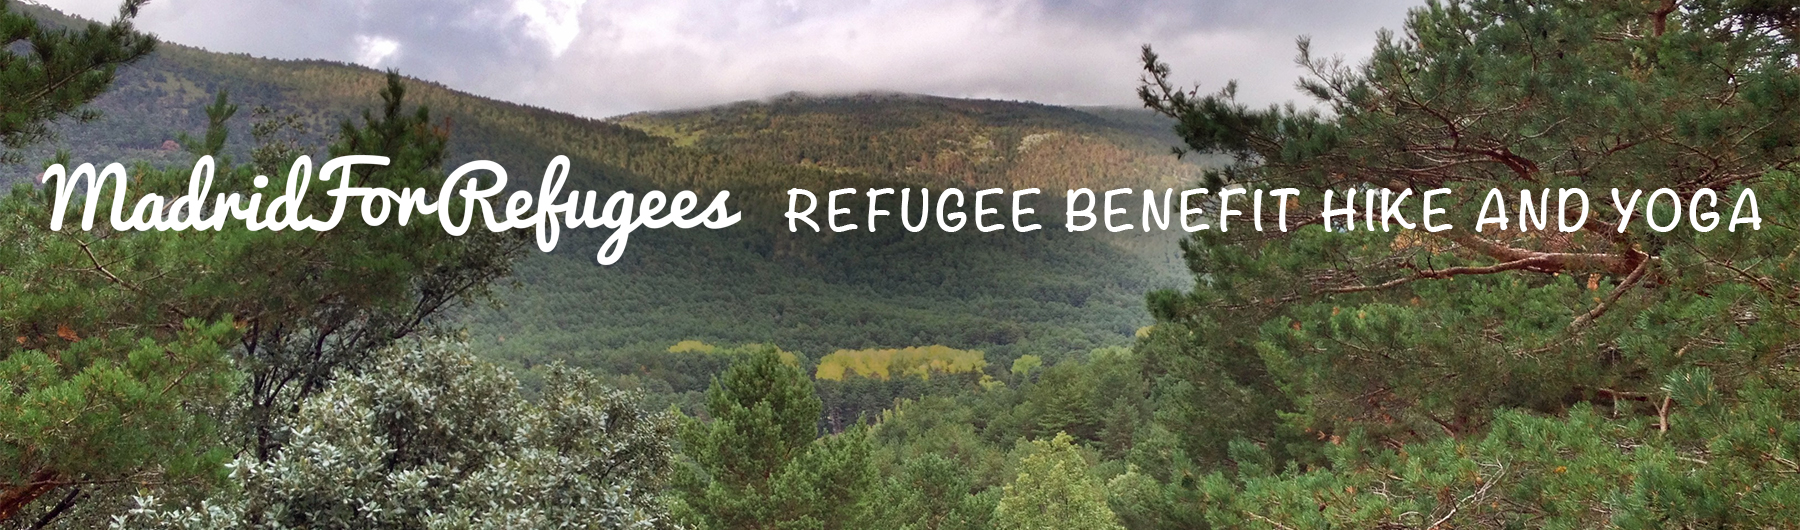 Refugee Benefit Hike and Yoga El Escorial